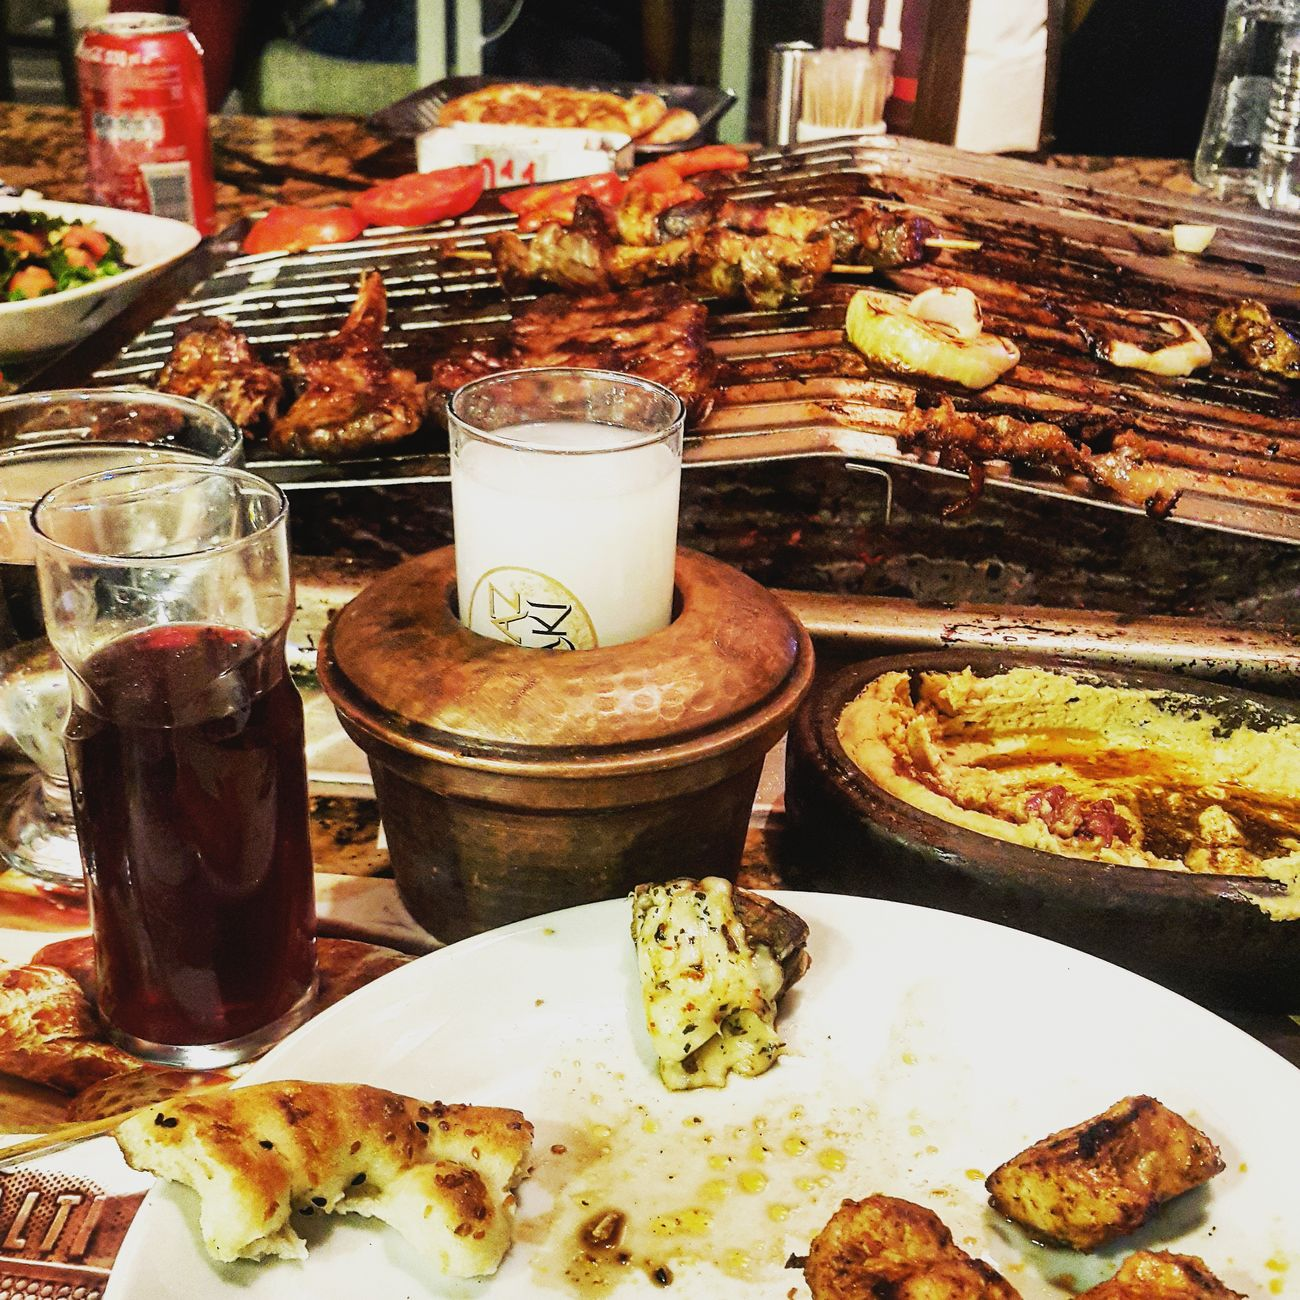 Rakı Candır Turkish Raki Hello World Mangalbasi Steakhouse Salgam